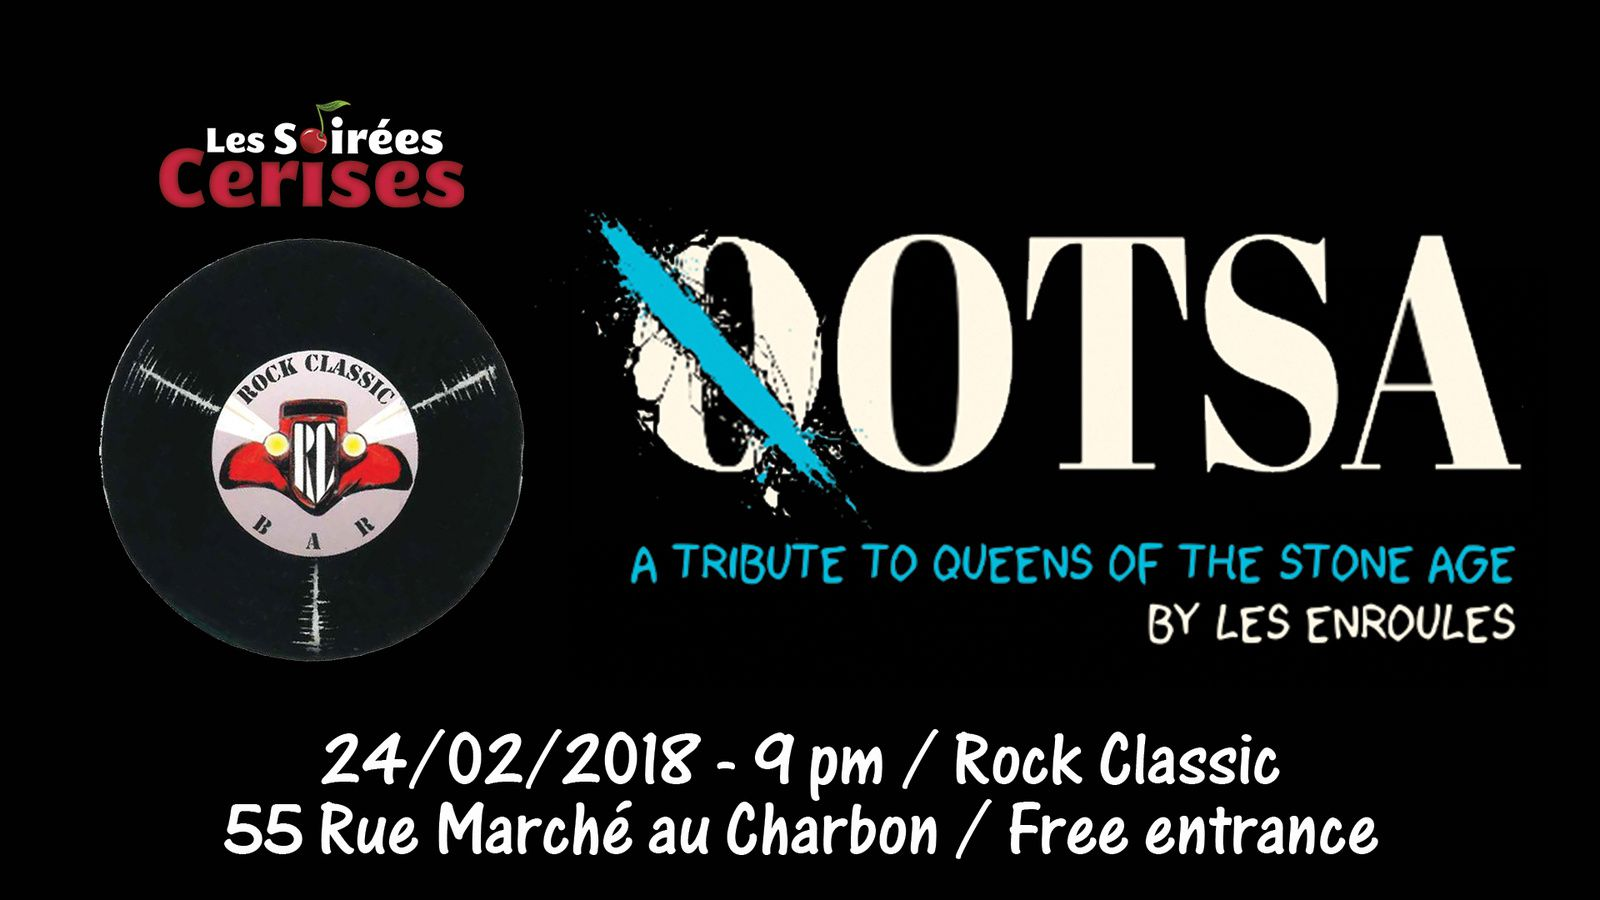 ▶ Tribute to the QUEEN OF THE STONE AGE par Les enroules @ Rock Classic - 24/02/2018 - 21h00 - Entrée gratuite !